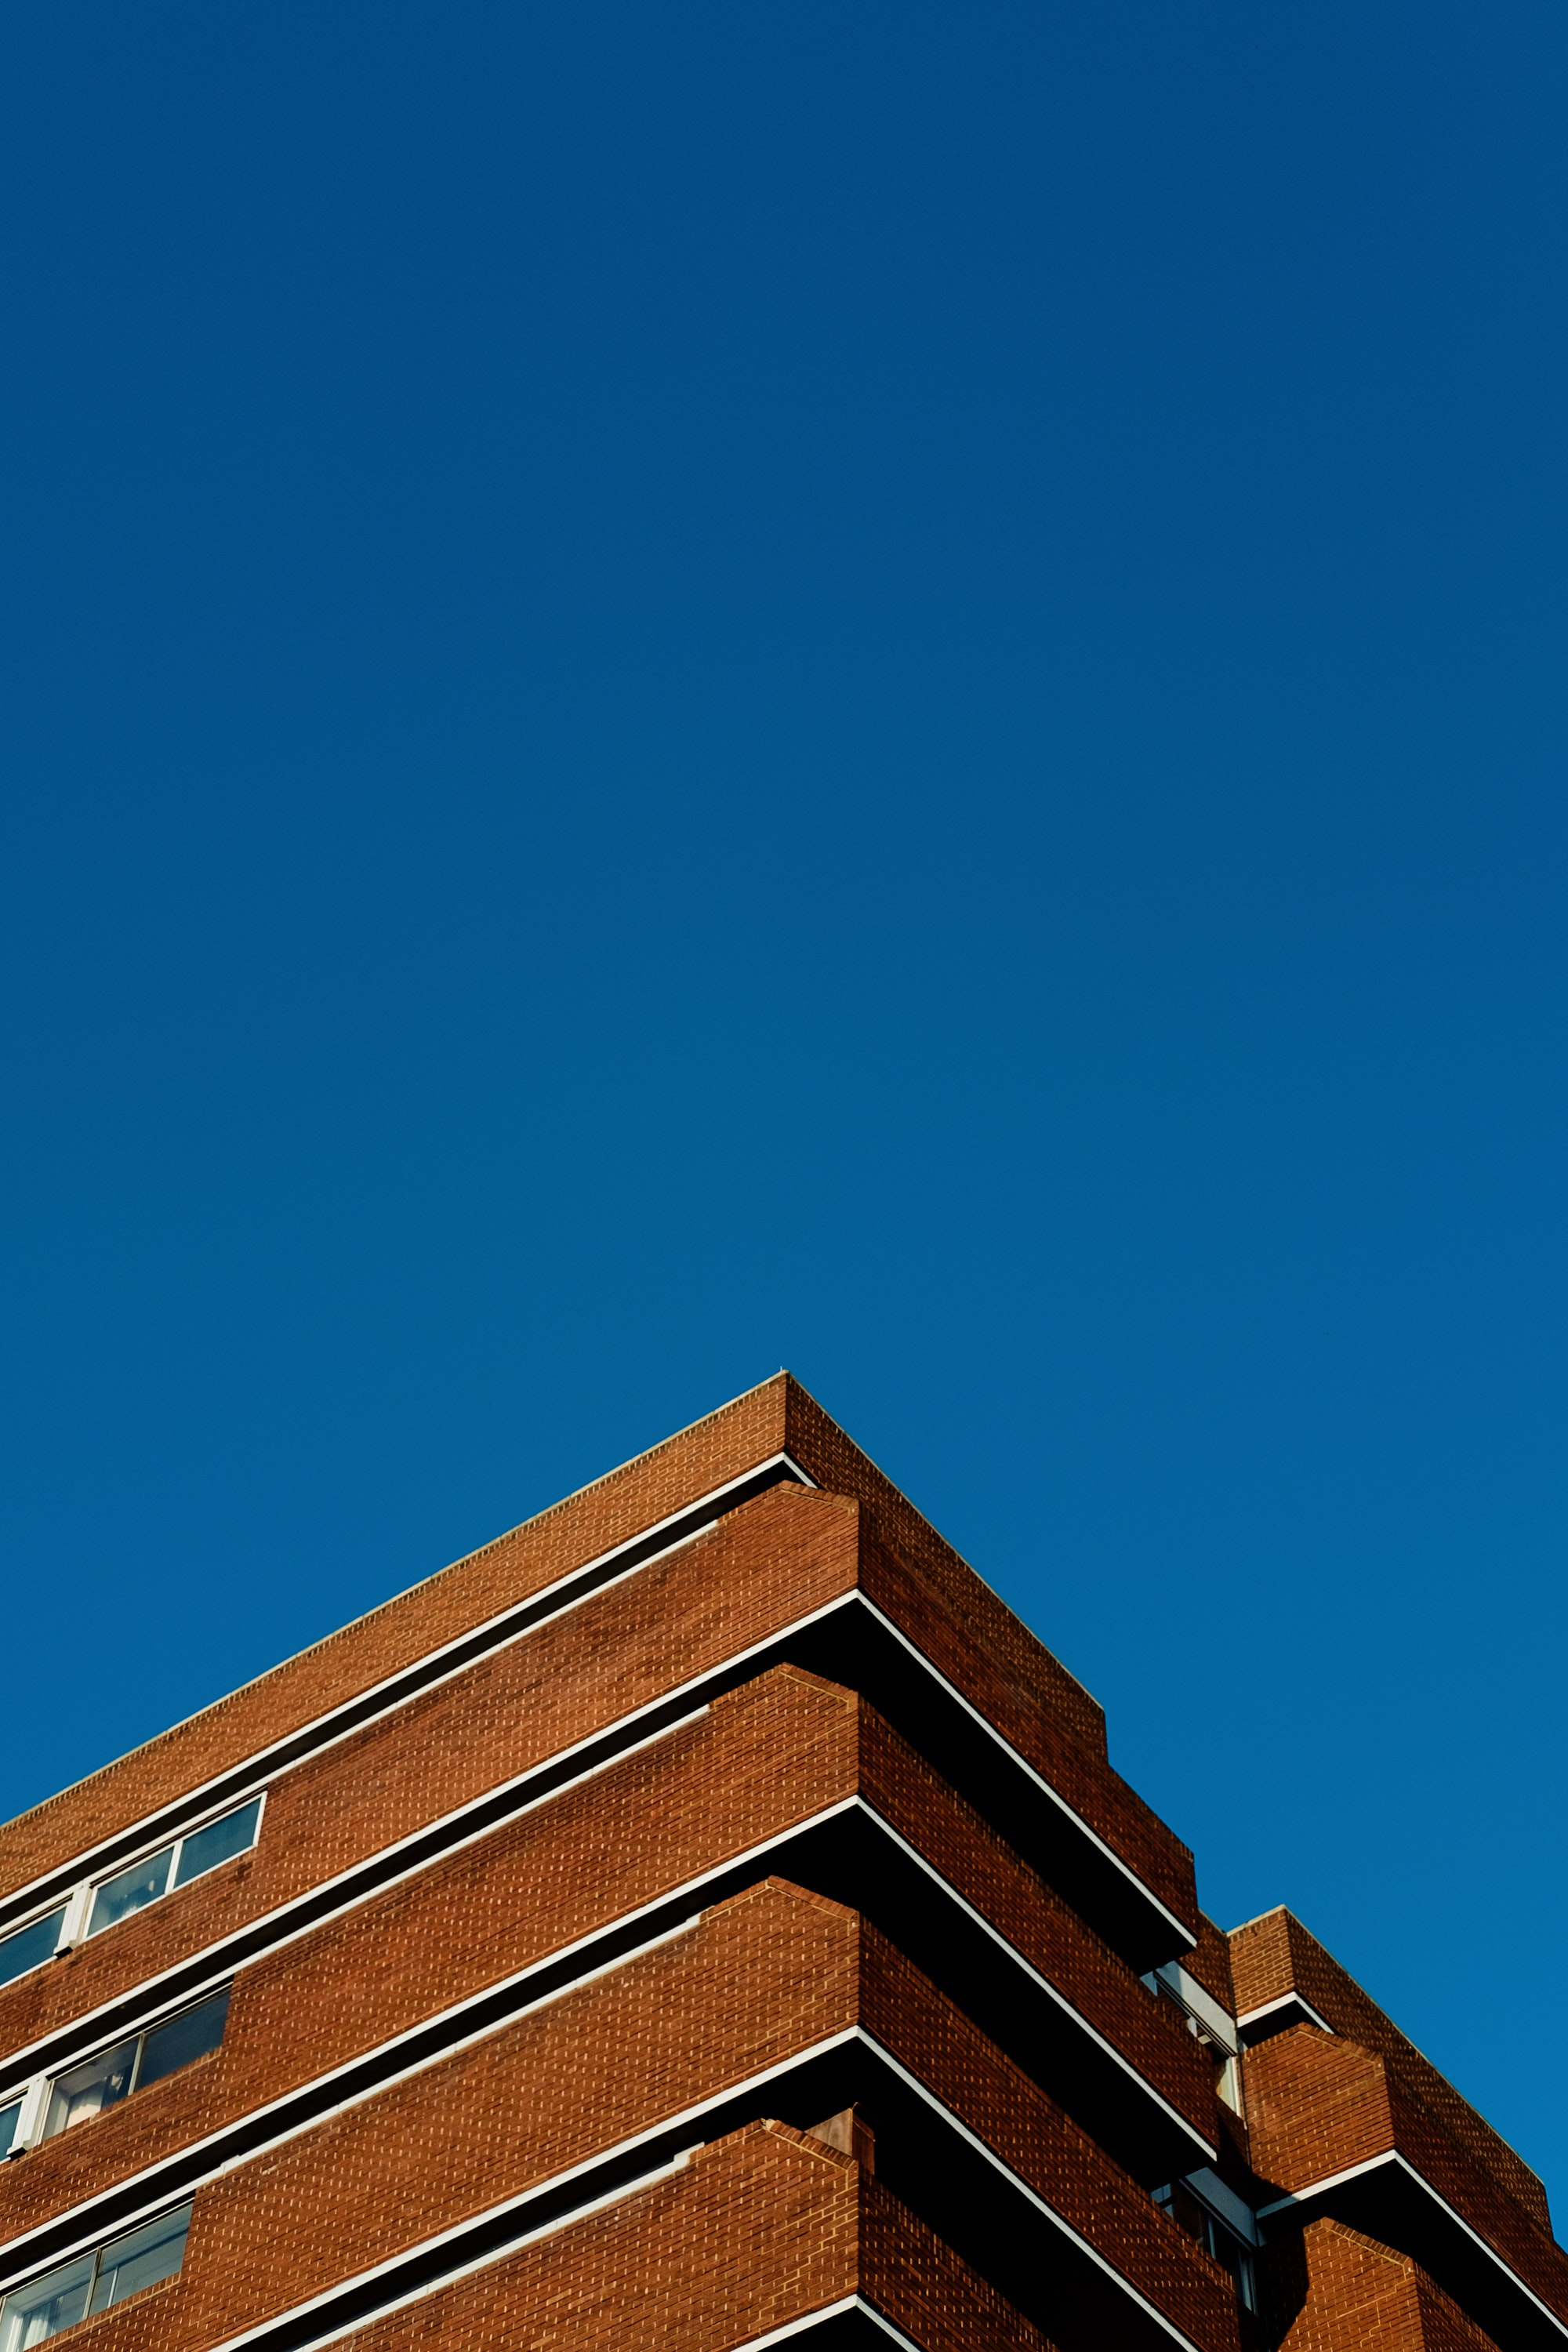 brown building during daytime